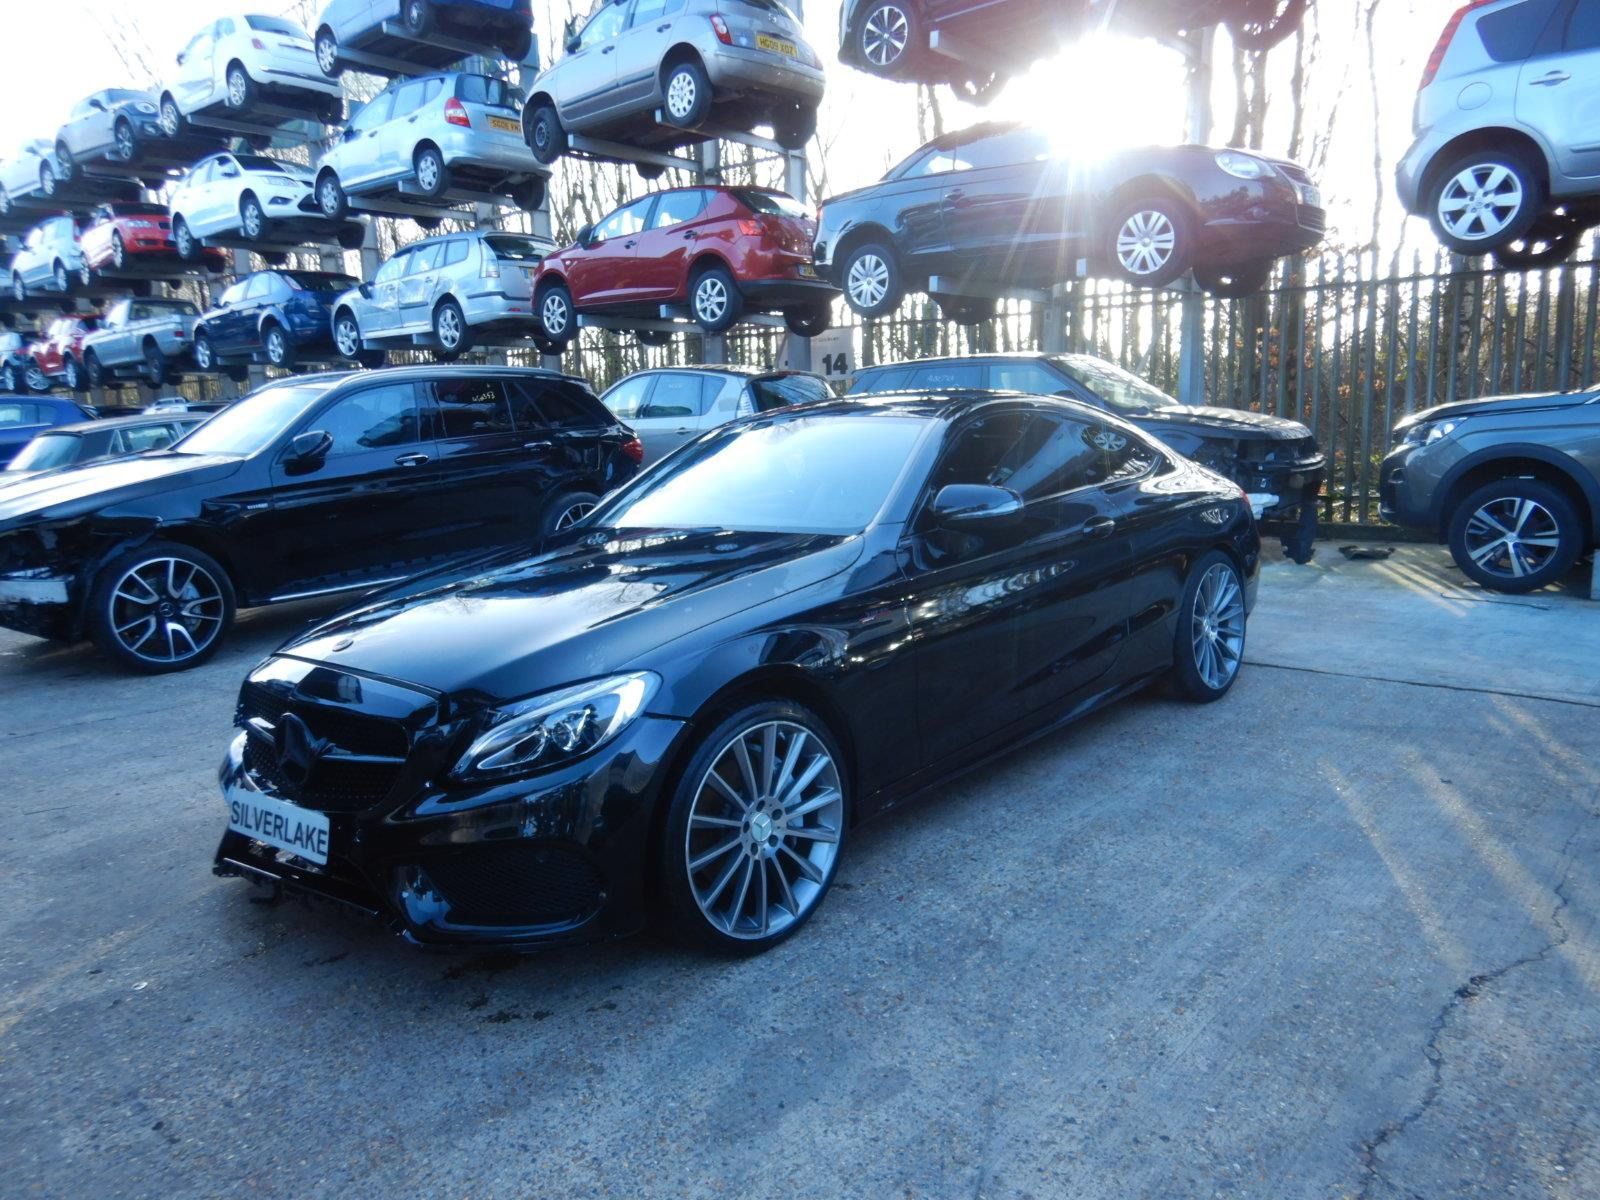 2016 Mercedes-Benz C Class C250 AMG Line d 2143cc Turbo Diesel Automatic 9 Speed 2 Door Coupe